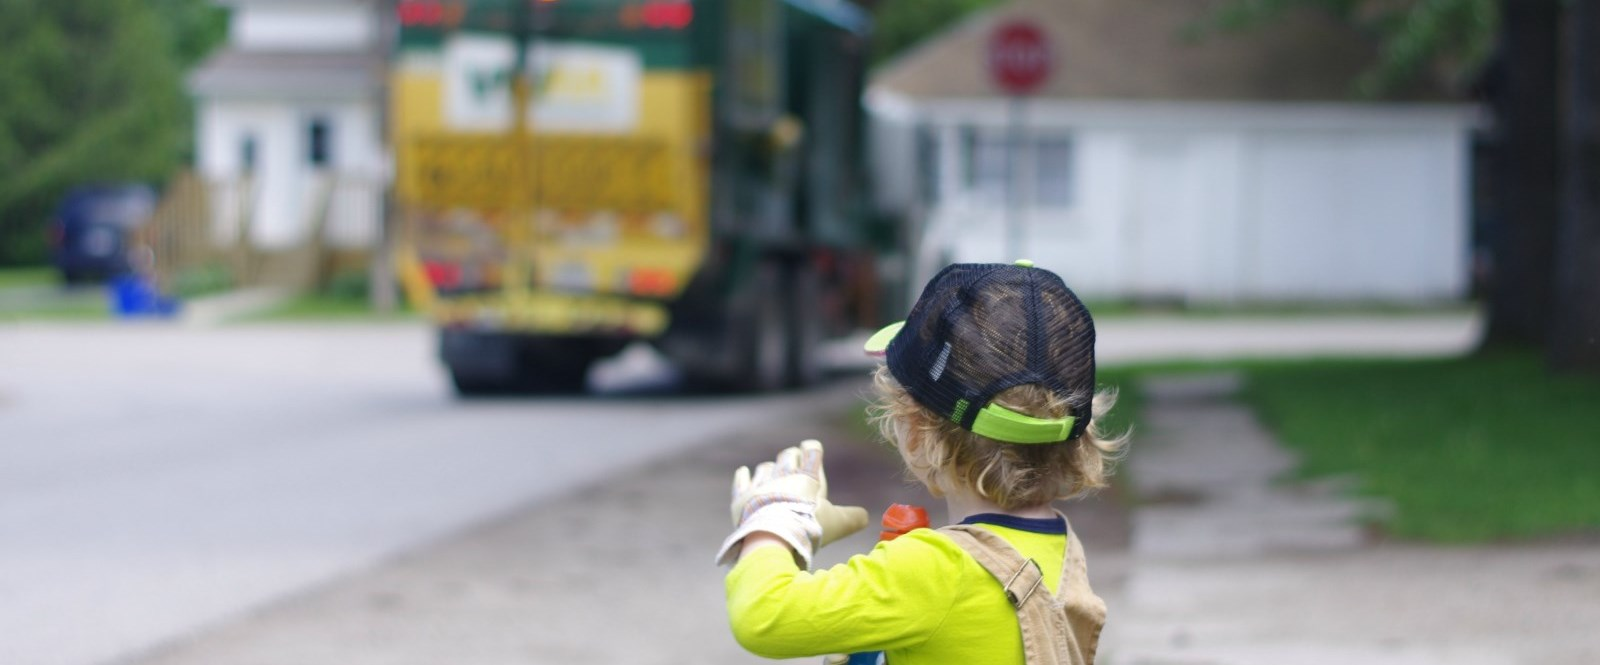 boy waving at garbage truck